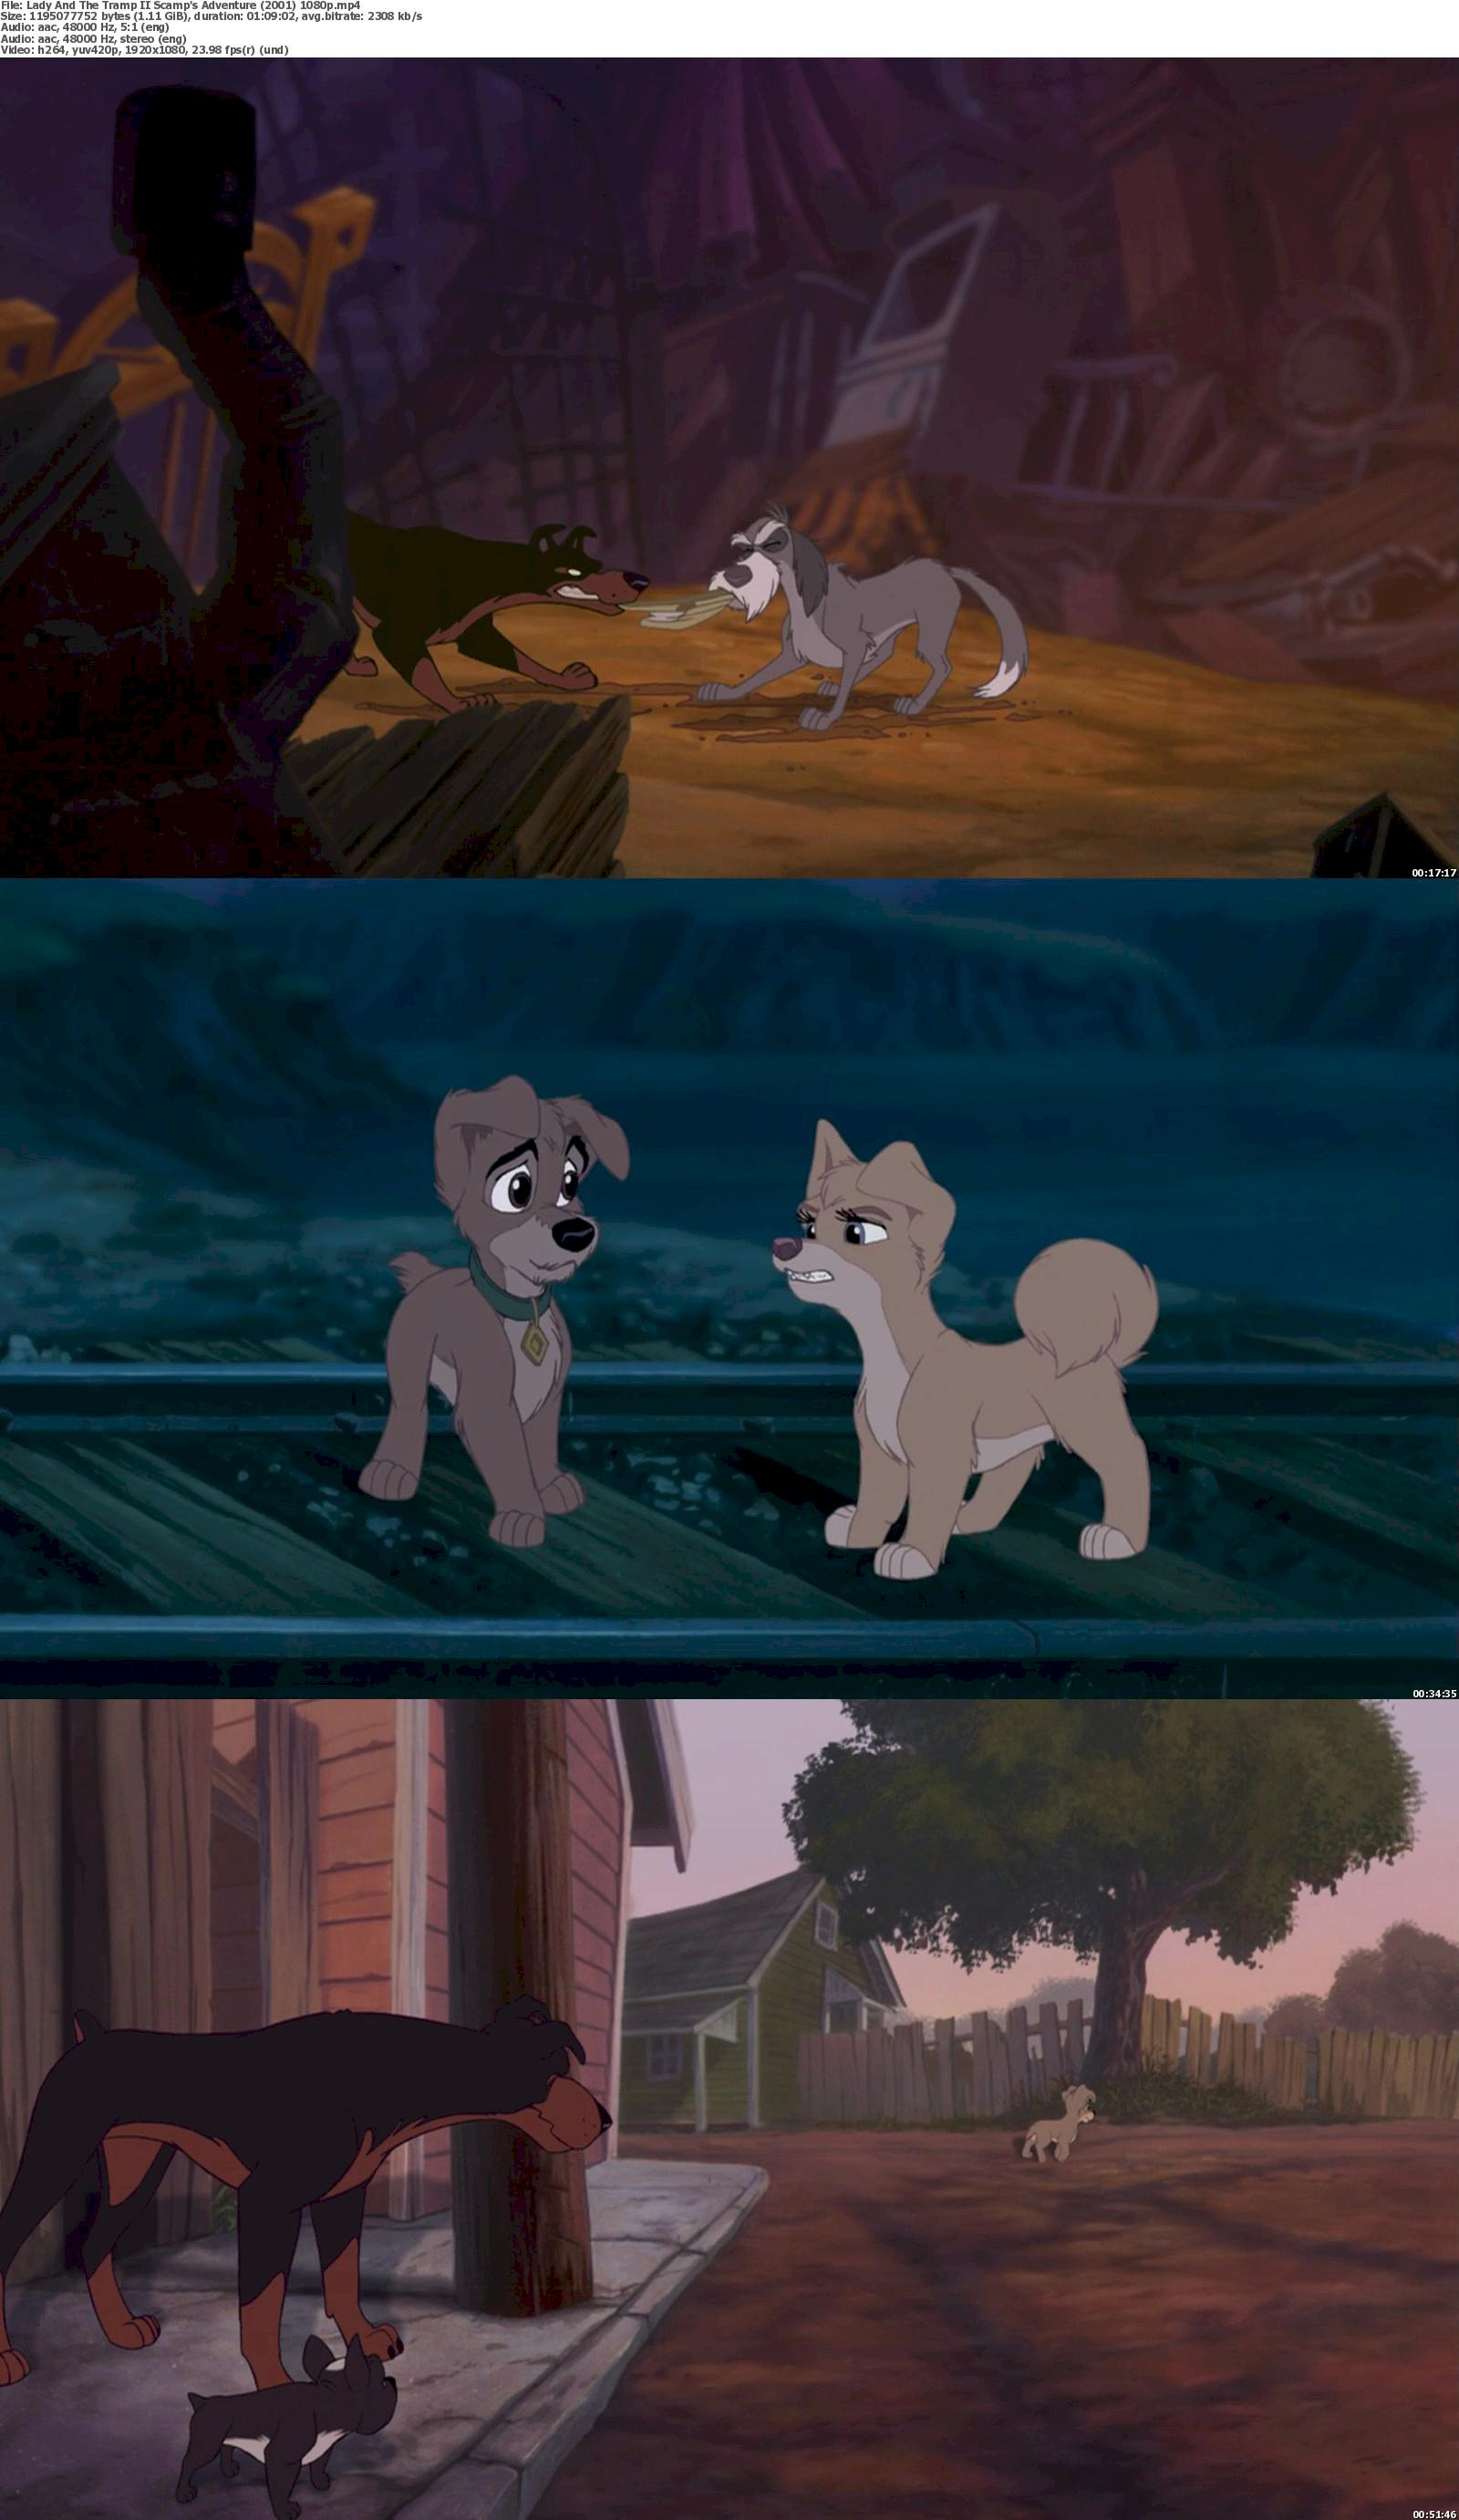 Lady and the Tramp 2: Scamp's Adventure (2001) 1080p Bluray Free Download 1080p Screenshot